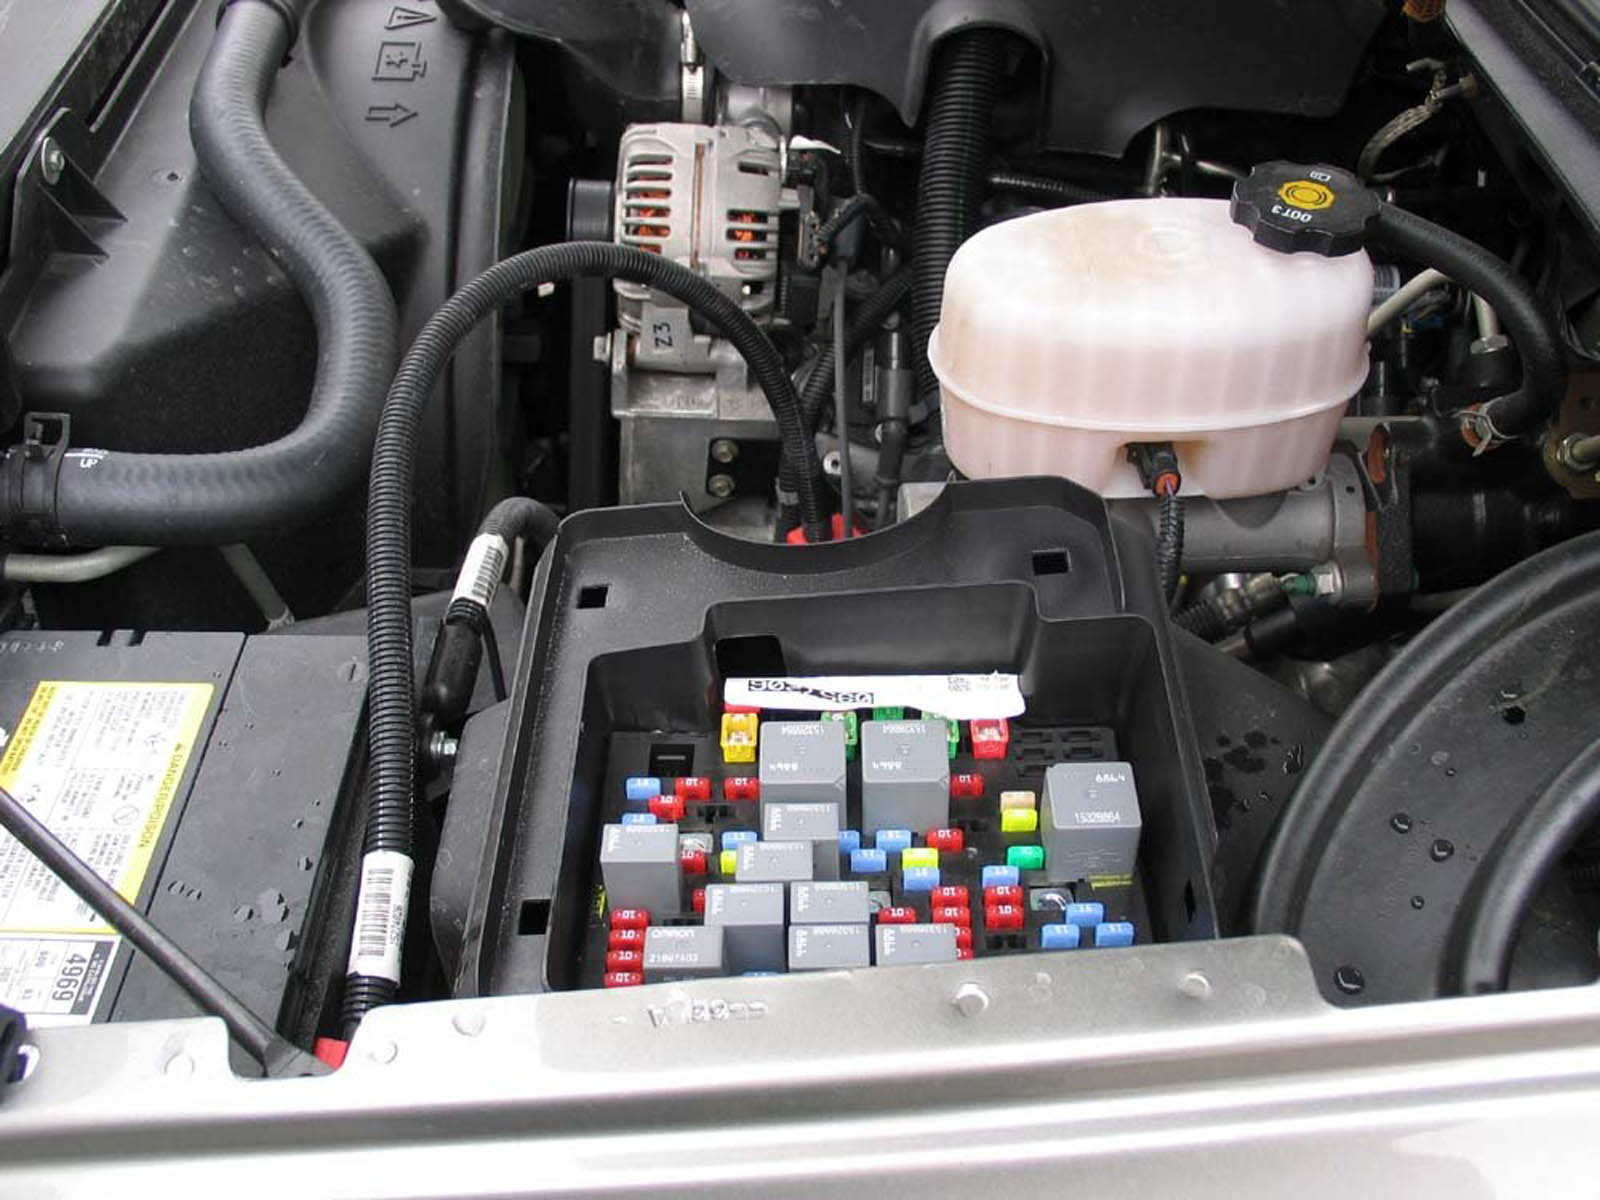 MMMay 27 Fuse Box 04 69845 chevrolet silverado gmt800 1999 2006 fuse box diagram chevroletforum 2003 chevy silverado fuse box diagram at reclaimingppi.co